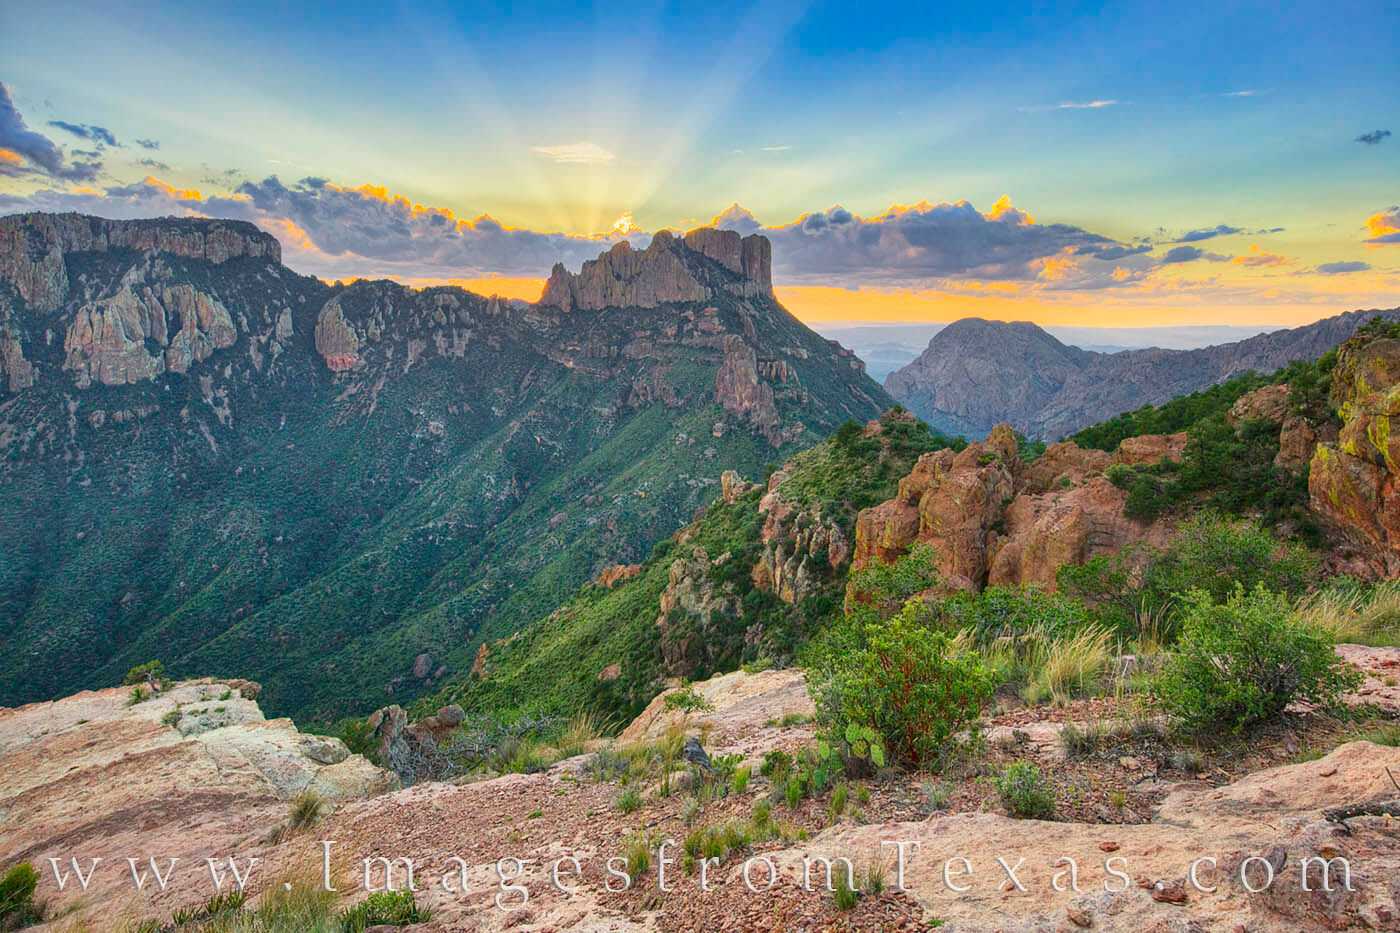 lost mine, lost mine trail, hiking, big bend, big bend national park, west texas, chisos mountains, sunset, photo